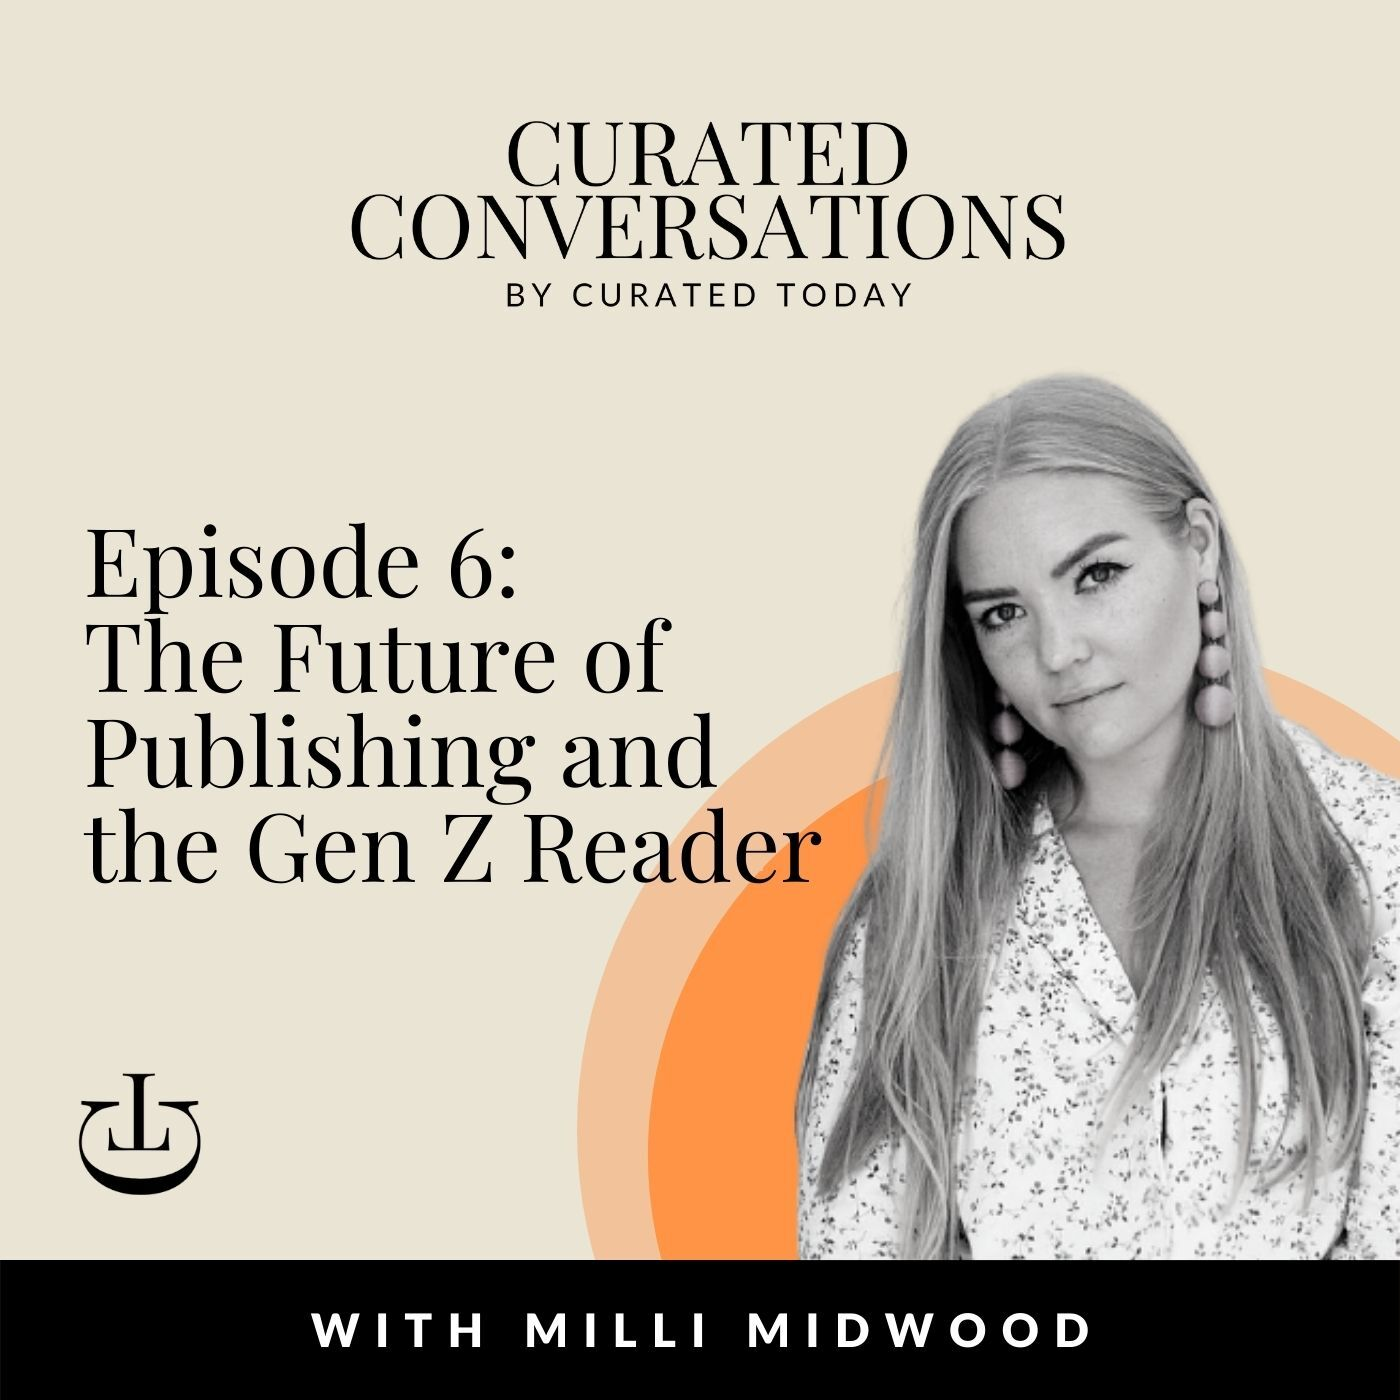 The Future of Publishing and the Gen Z Reader – With Cosmopolitan Middle East's Editor in Chief, Milli Midwood